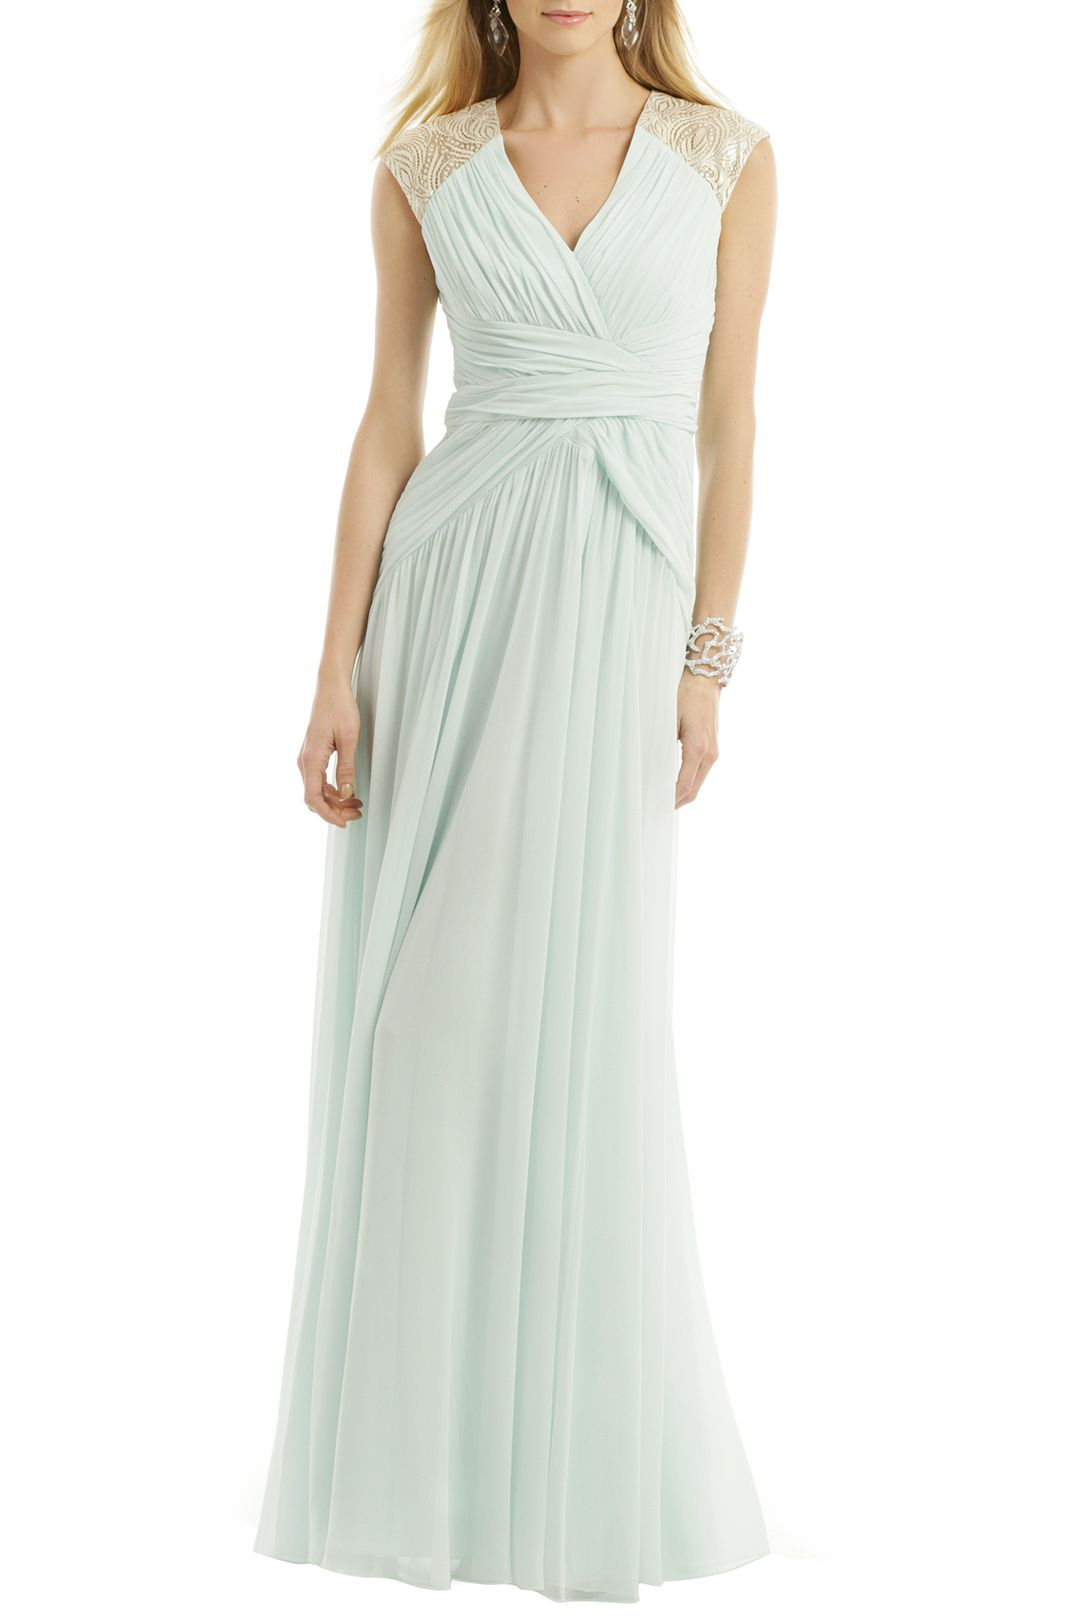 Rent mint dream gown by badgley mischka for only at rent the